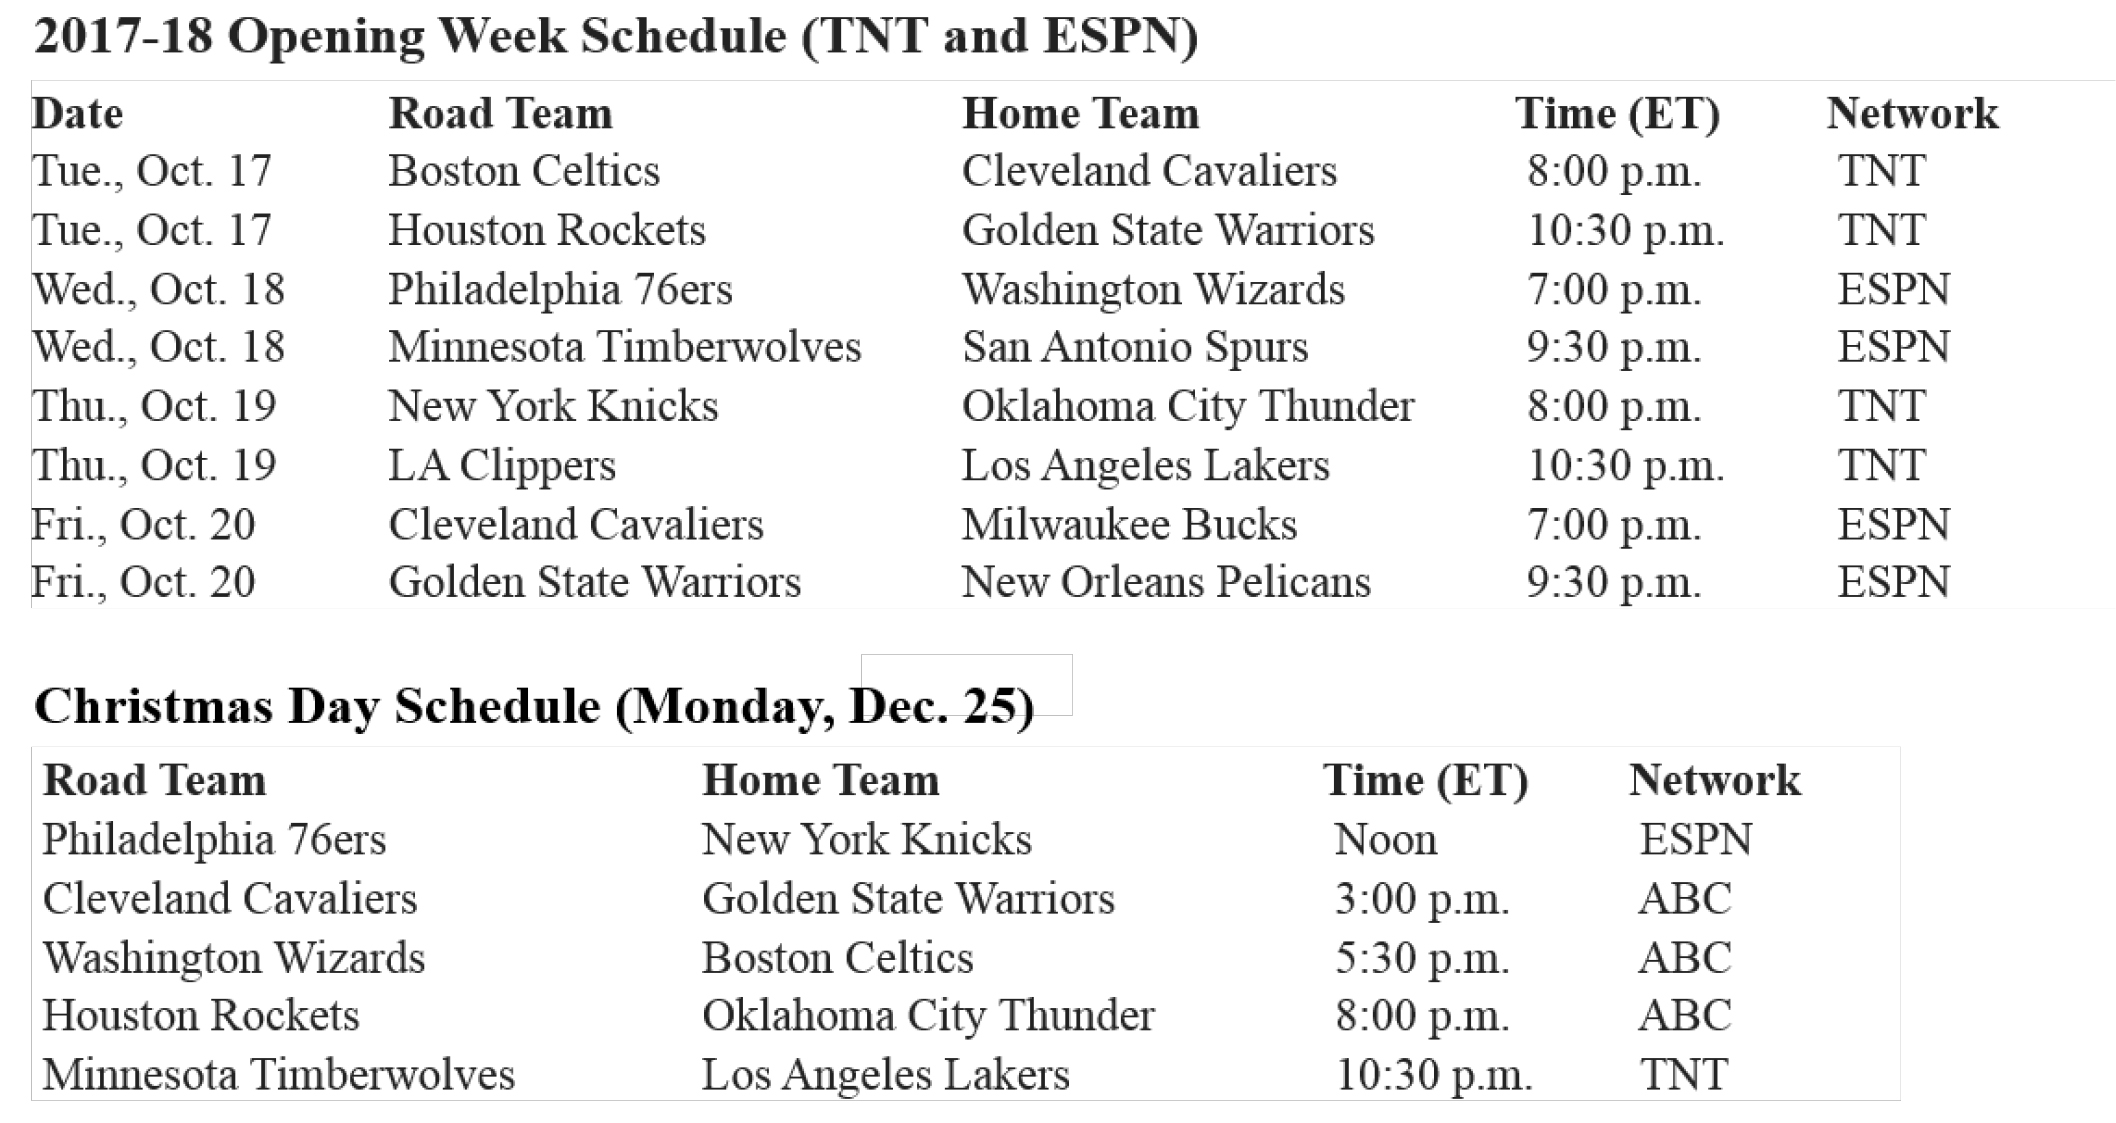 nba unveils national tv schedule for 2017-18 opening week and